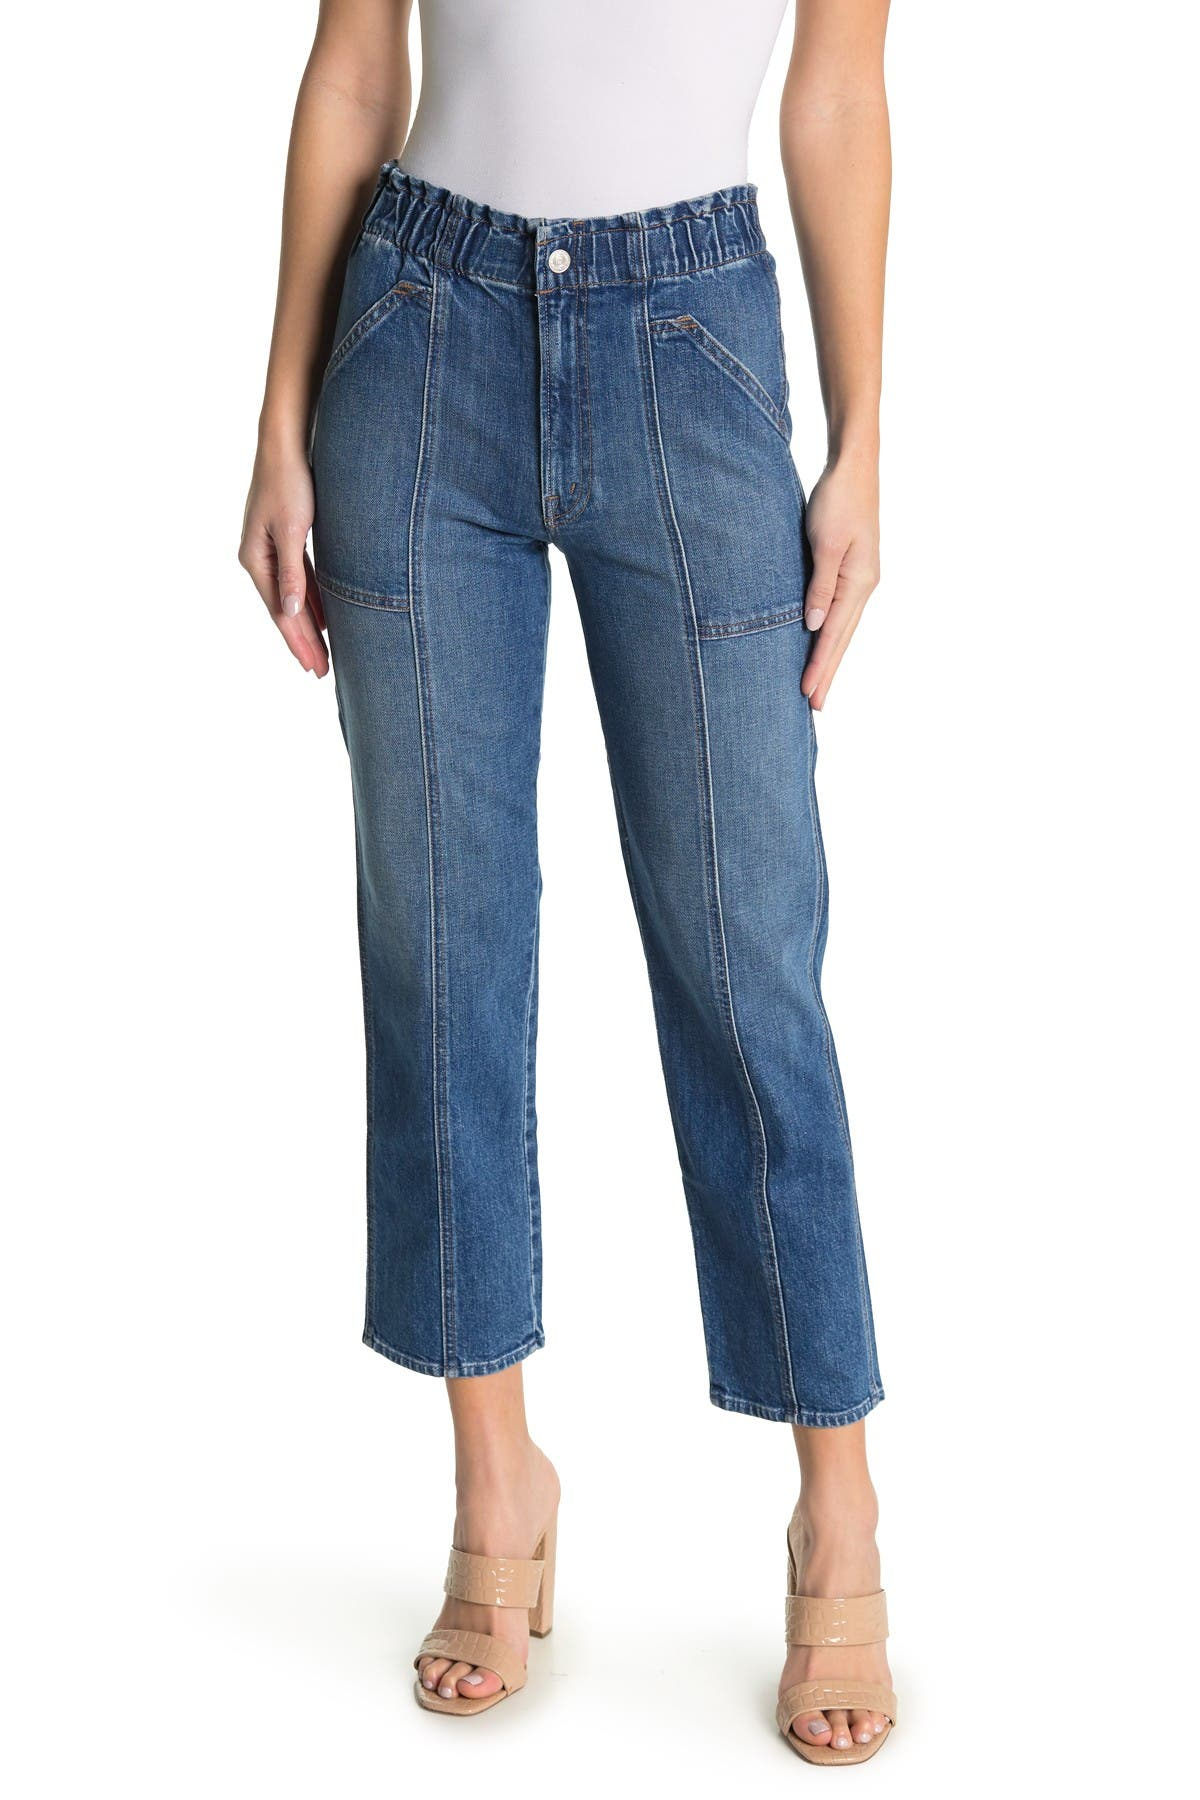 Image of MOTHER The Springy Ankle Crop Straight Jeans